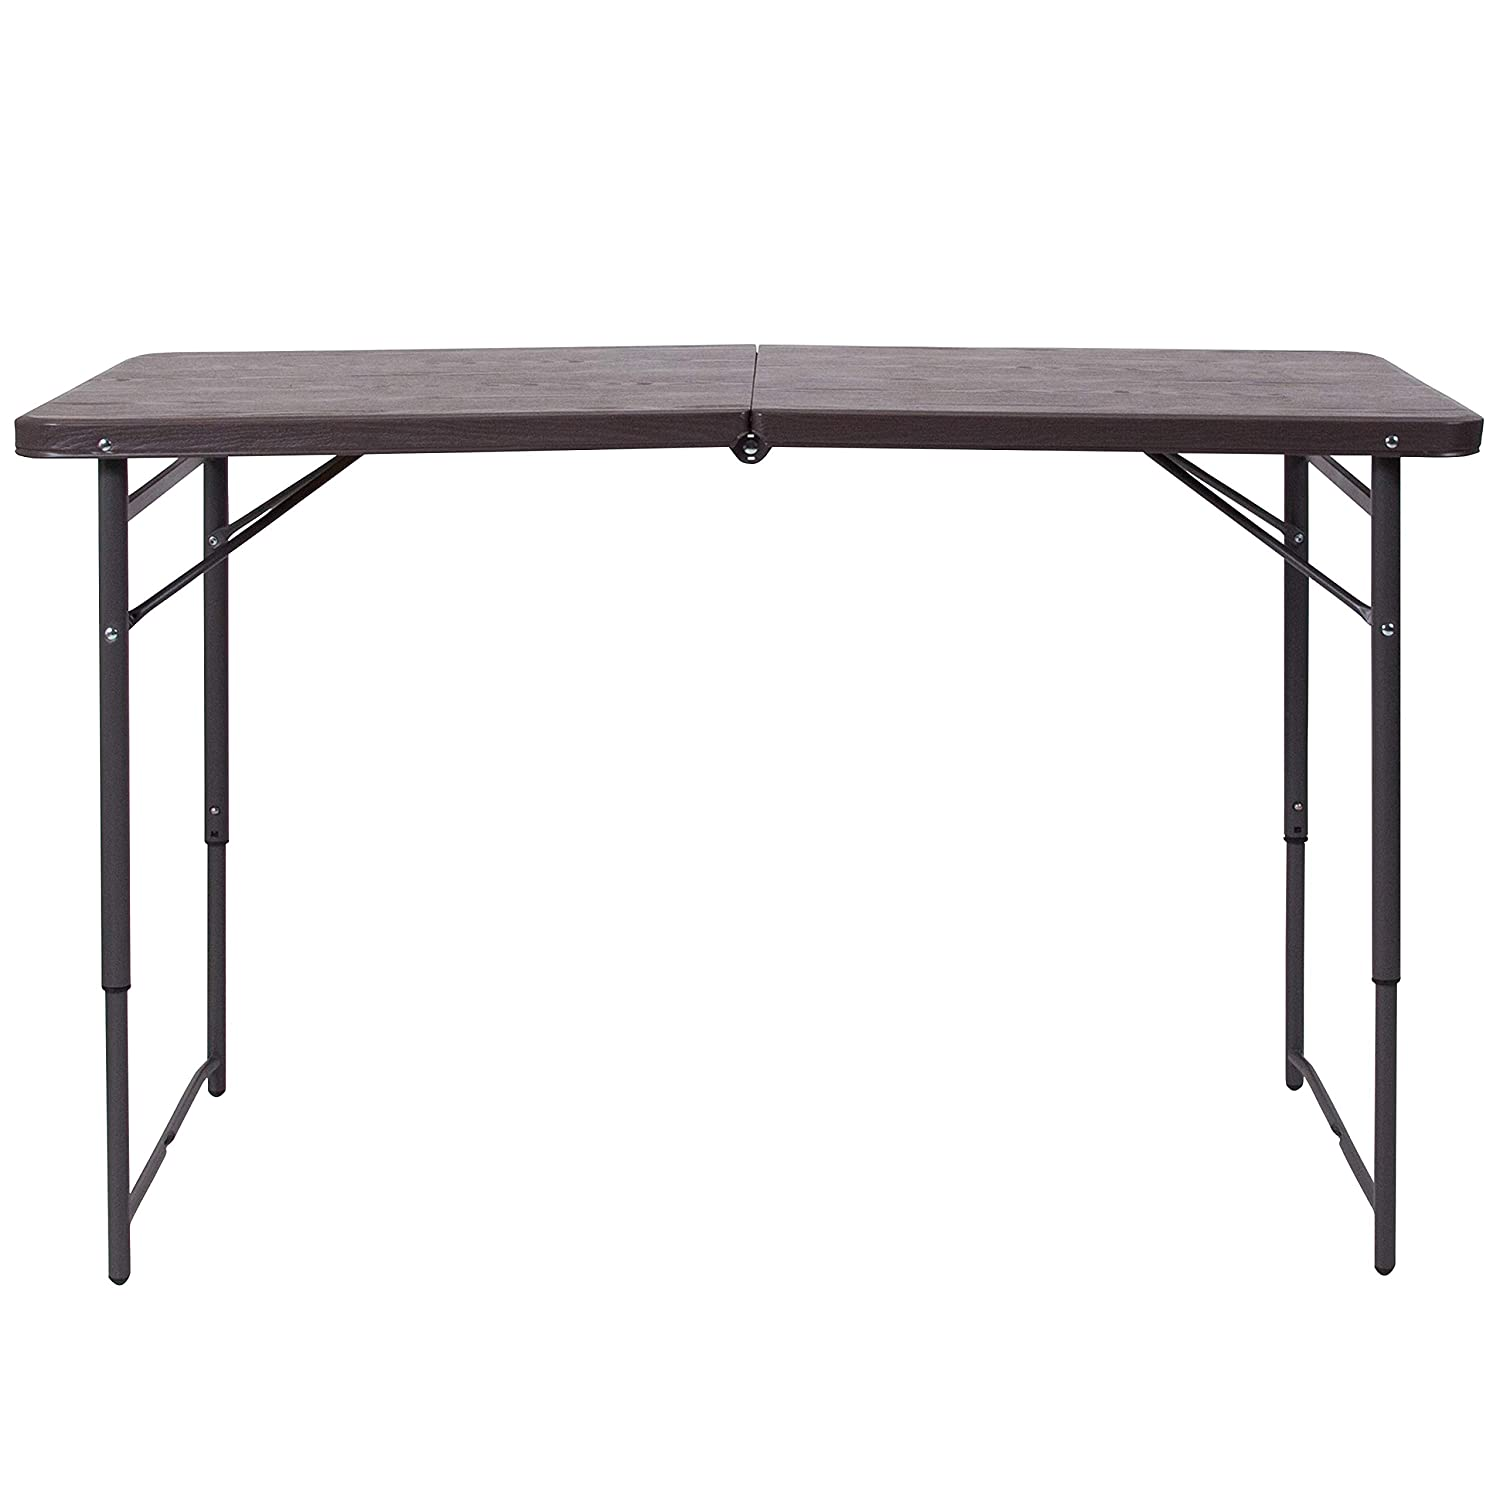 Flash Furniture DAD-LF-122Z-GG BRN 23.5×48.25 Plastic Folding Tables, Brown